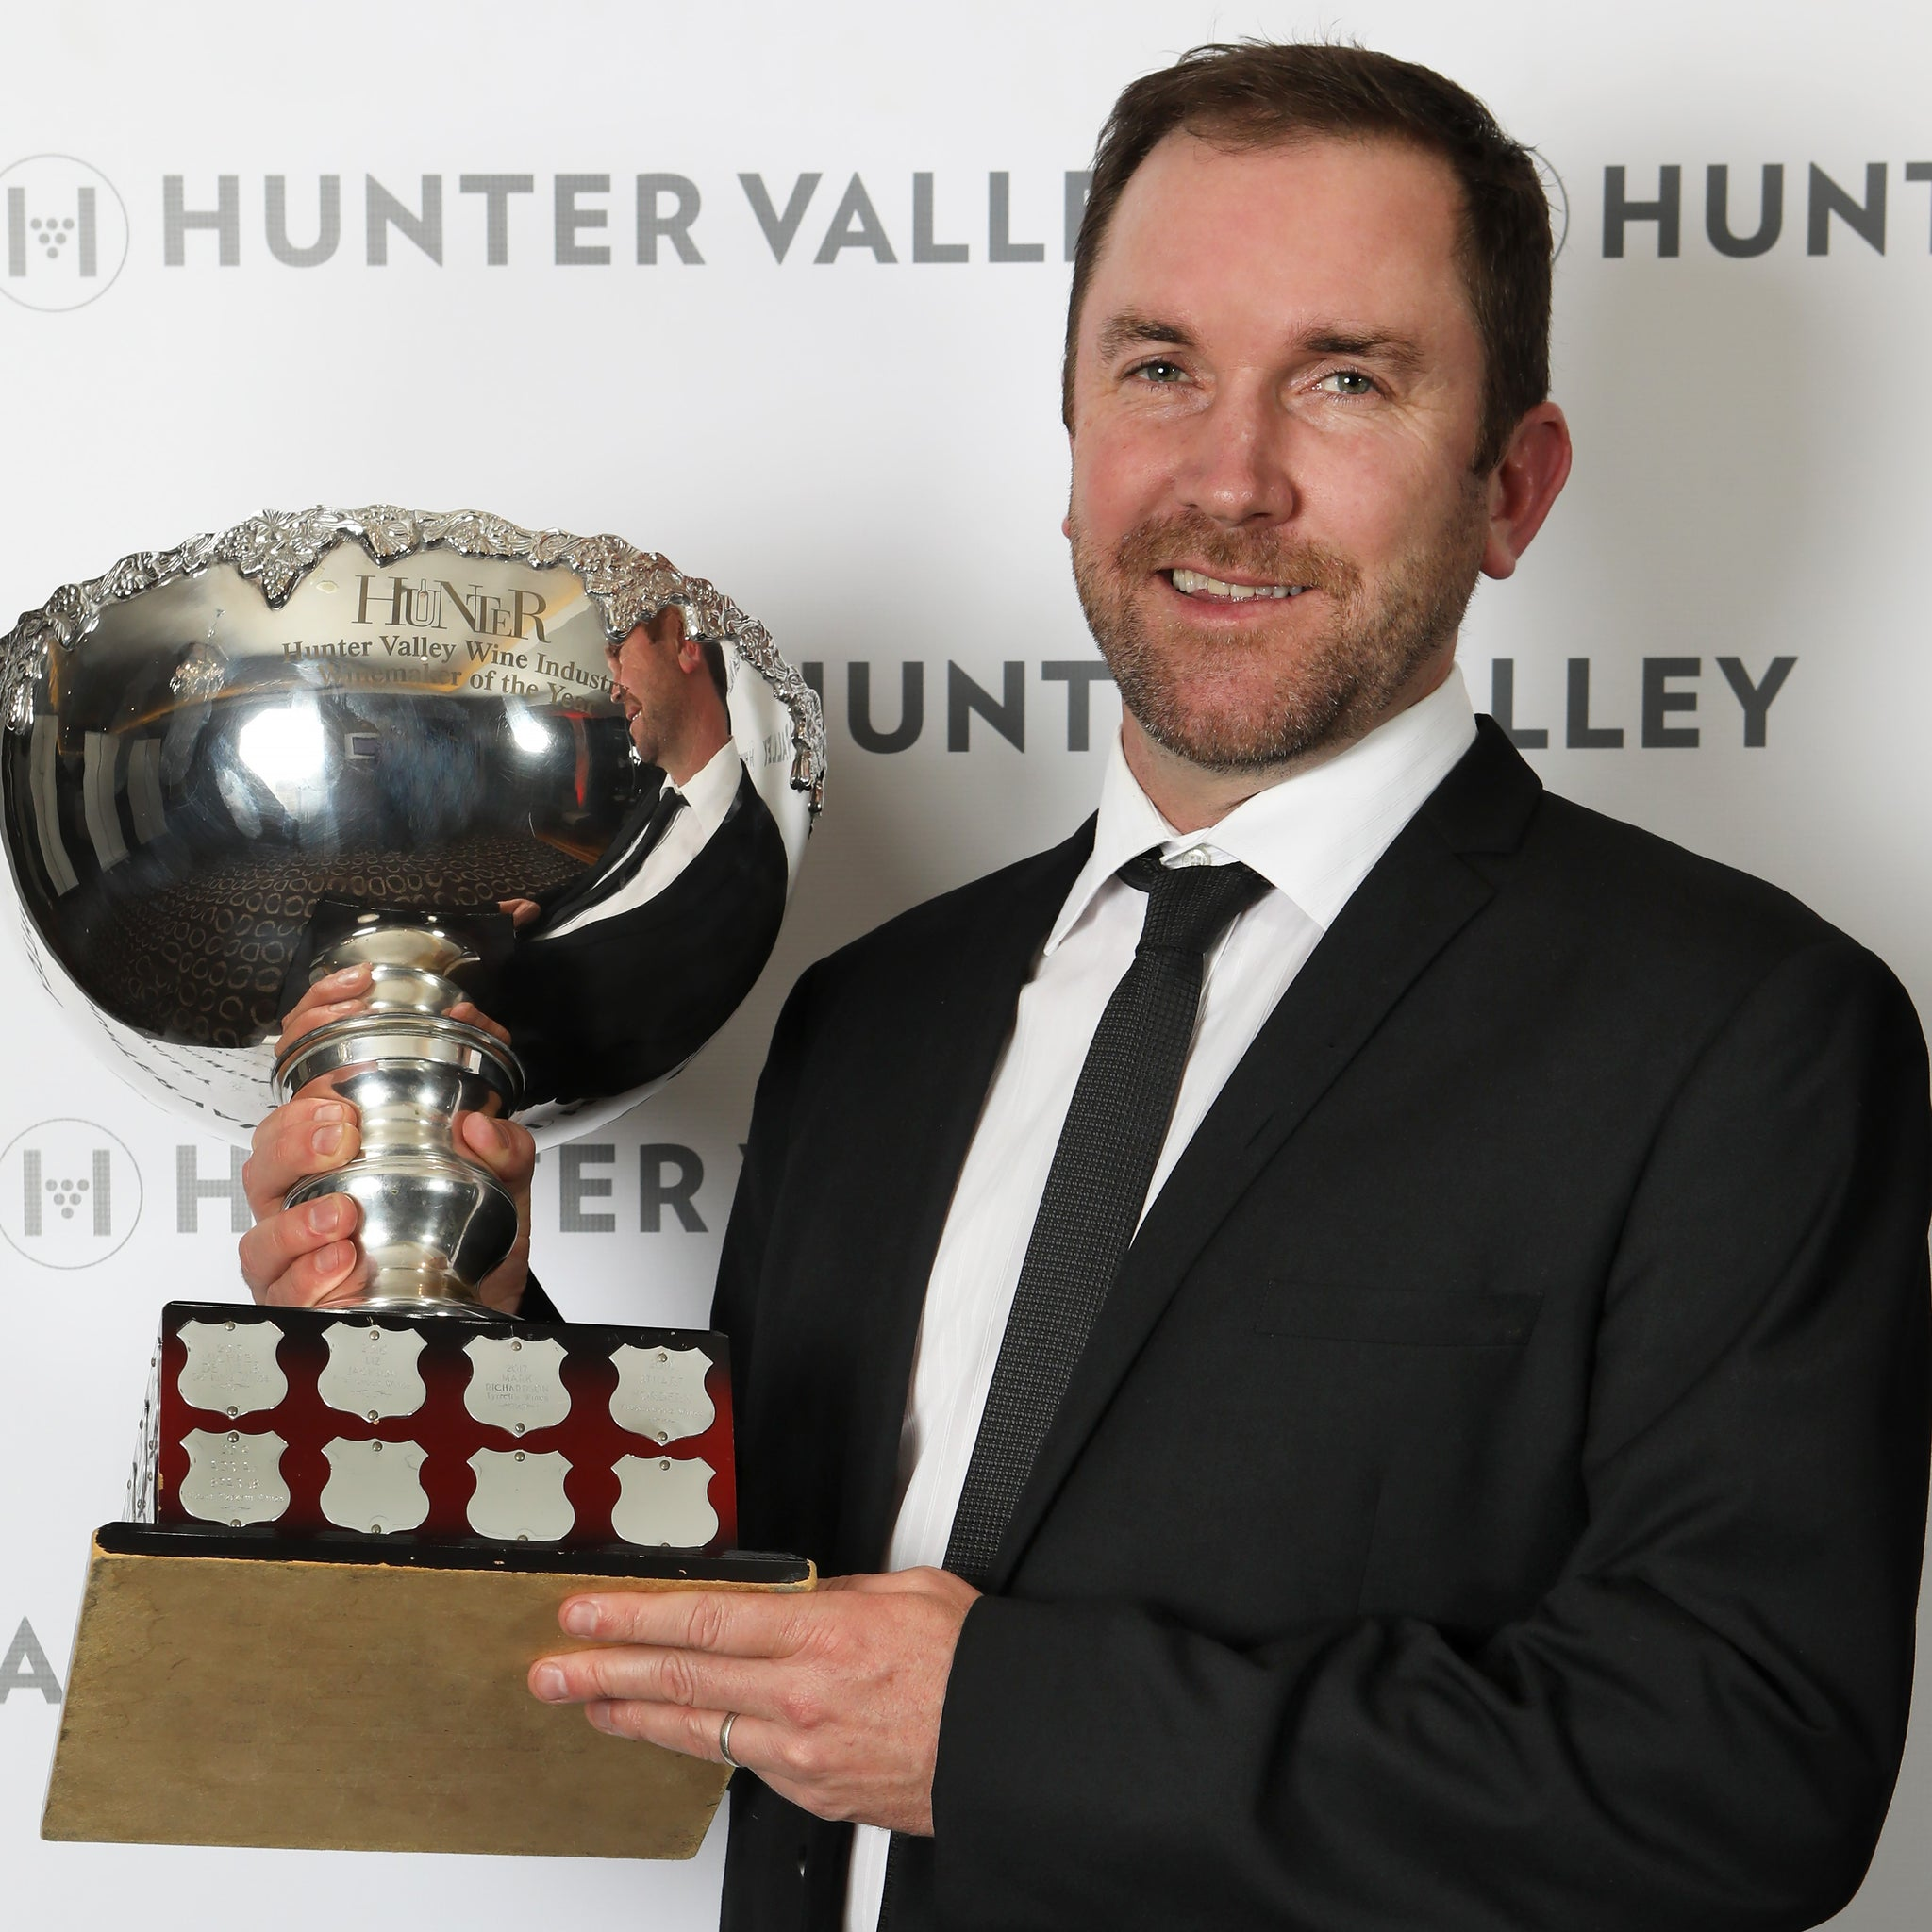 Chief Winemaker Adrian Sparks named 2019 Hunter Valley Winemaker of the Year